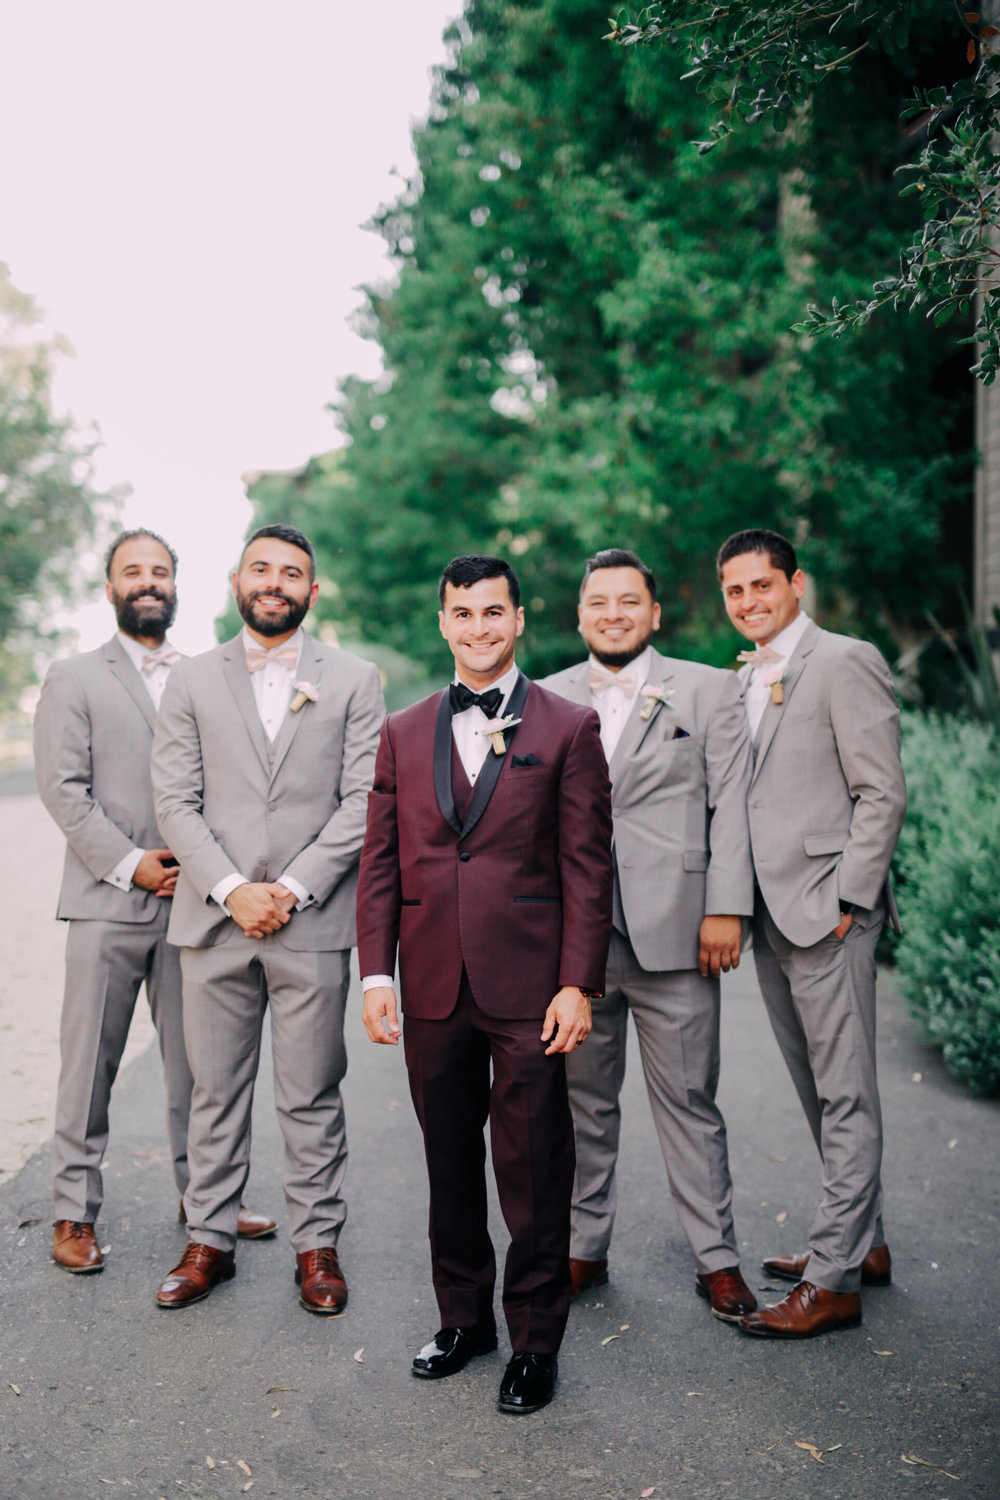 Groom and groomsmen slim fit tuxedos